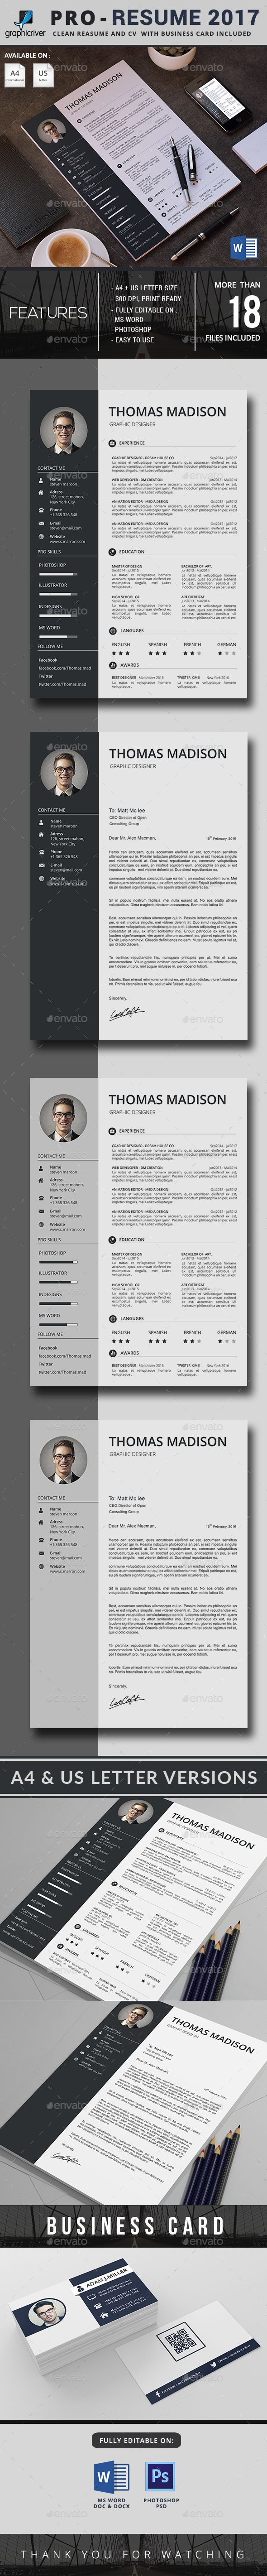 Resume | Resume cover letters, Template and Resume cv